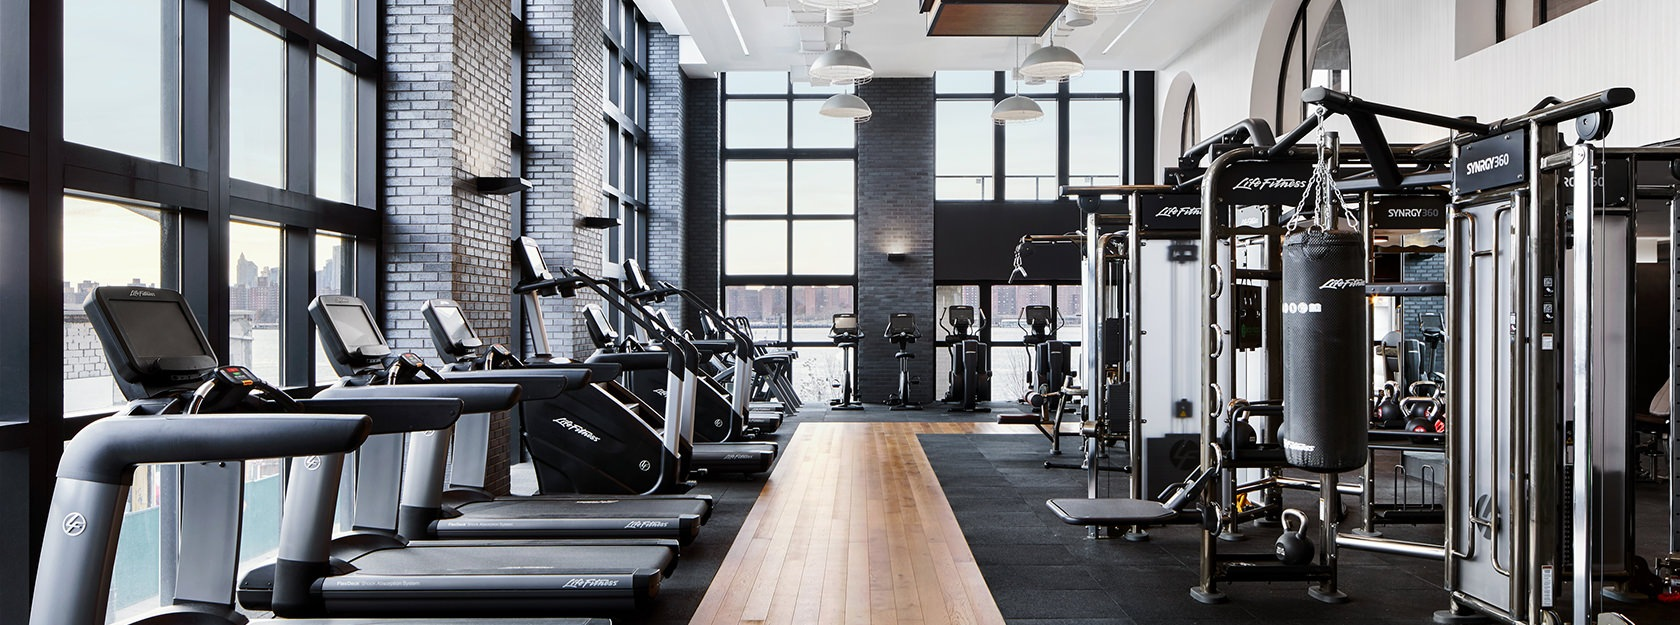 The Greenpoint fitness center